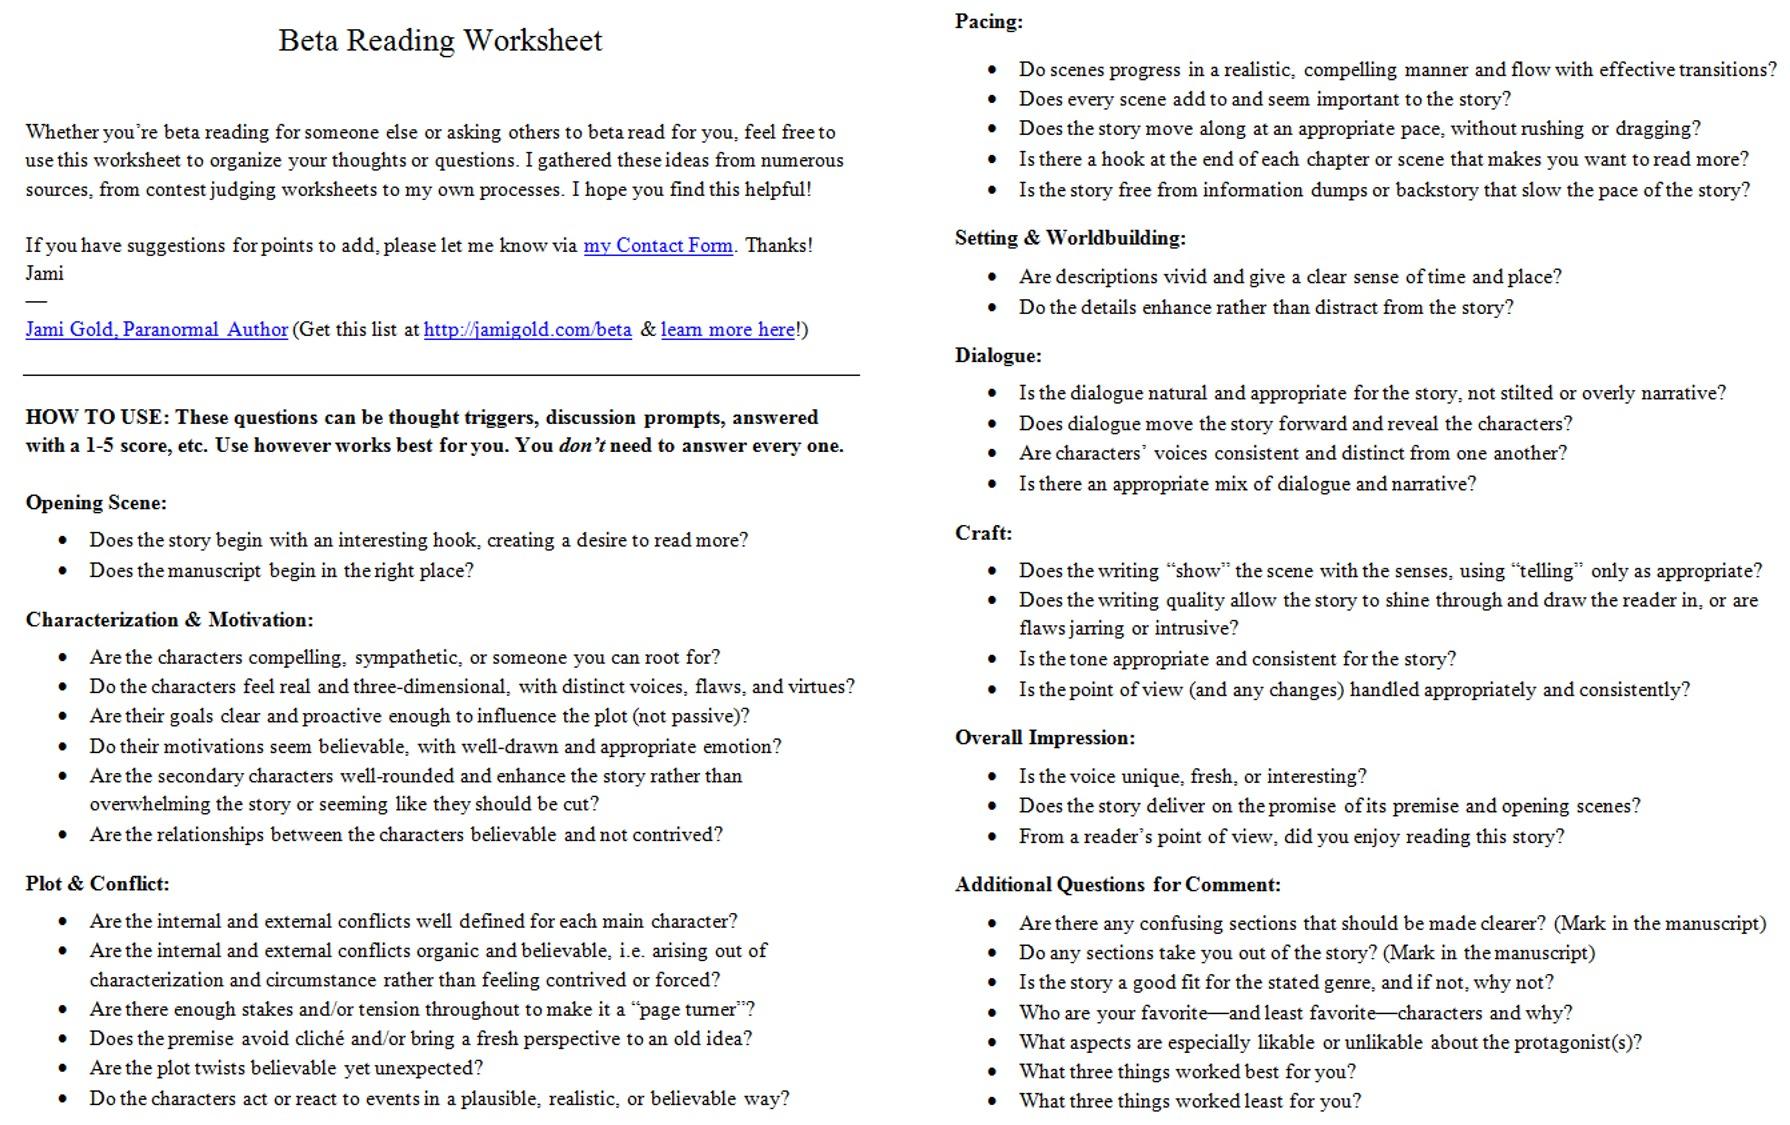 Aldiablosus  Picturesque Worksheets For Writers  Jami Gold Paranormal Author With Fair Screen Shot Of The Twopage Beta Reading Worksheet With Awesome Decimal Hundredths Worksheet Also Fact Family Multiplication Worksheets In Addition Adding Decimal Numbers Worksheet And Population Growth Worksheets As Well As Colours Worksheets For Kindergarten Additionally Angles Worksheet Ks From Jamigoldcom With Aldiablosus  Fair Worksheets For Writers  Jami Gold Paranormal Author With Awesome Screen Shot Of The Twopage Beta Reading Worksheet And Picturesque Decimal Hundredths Worksheet Also Fact Family Multiplication Worksheets In Addition Adding Decimal Numbers Worksheet From Jamigoldcom